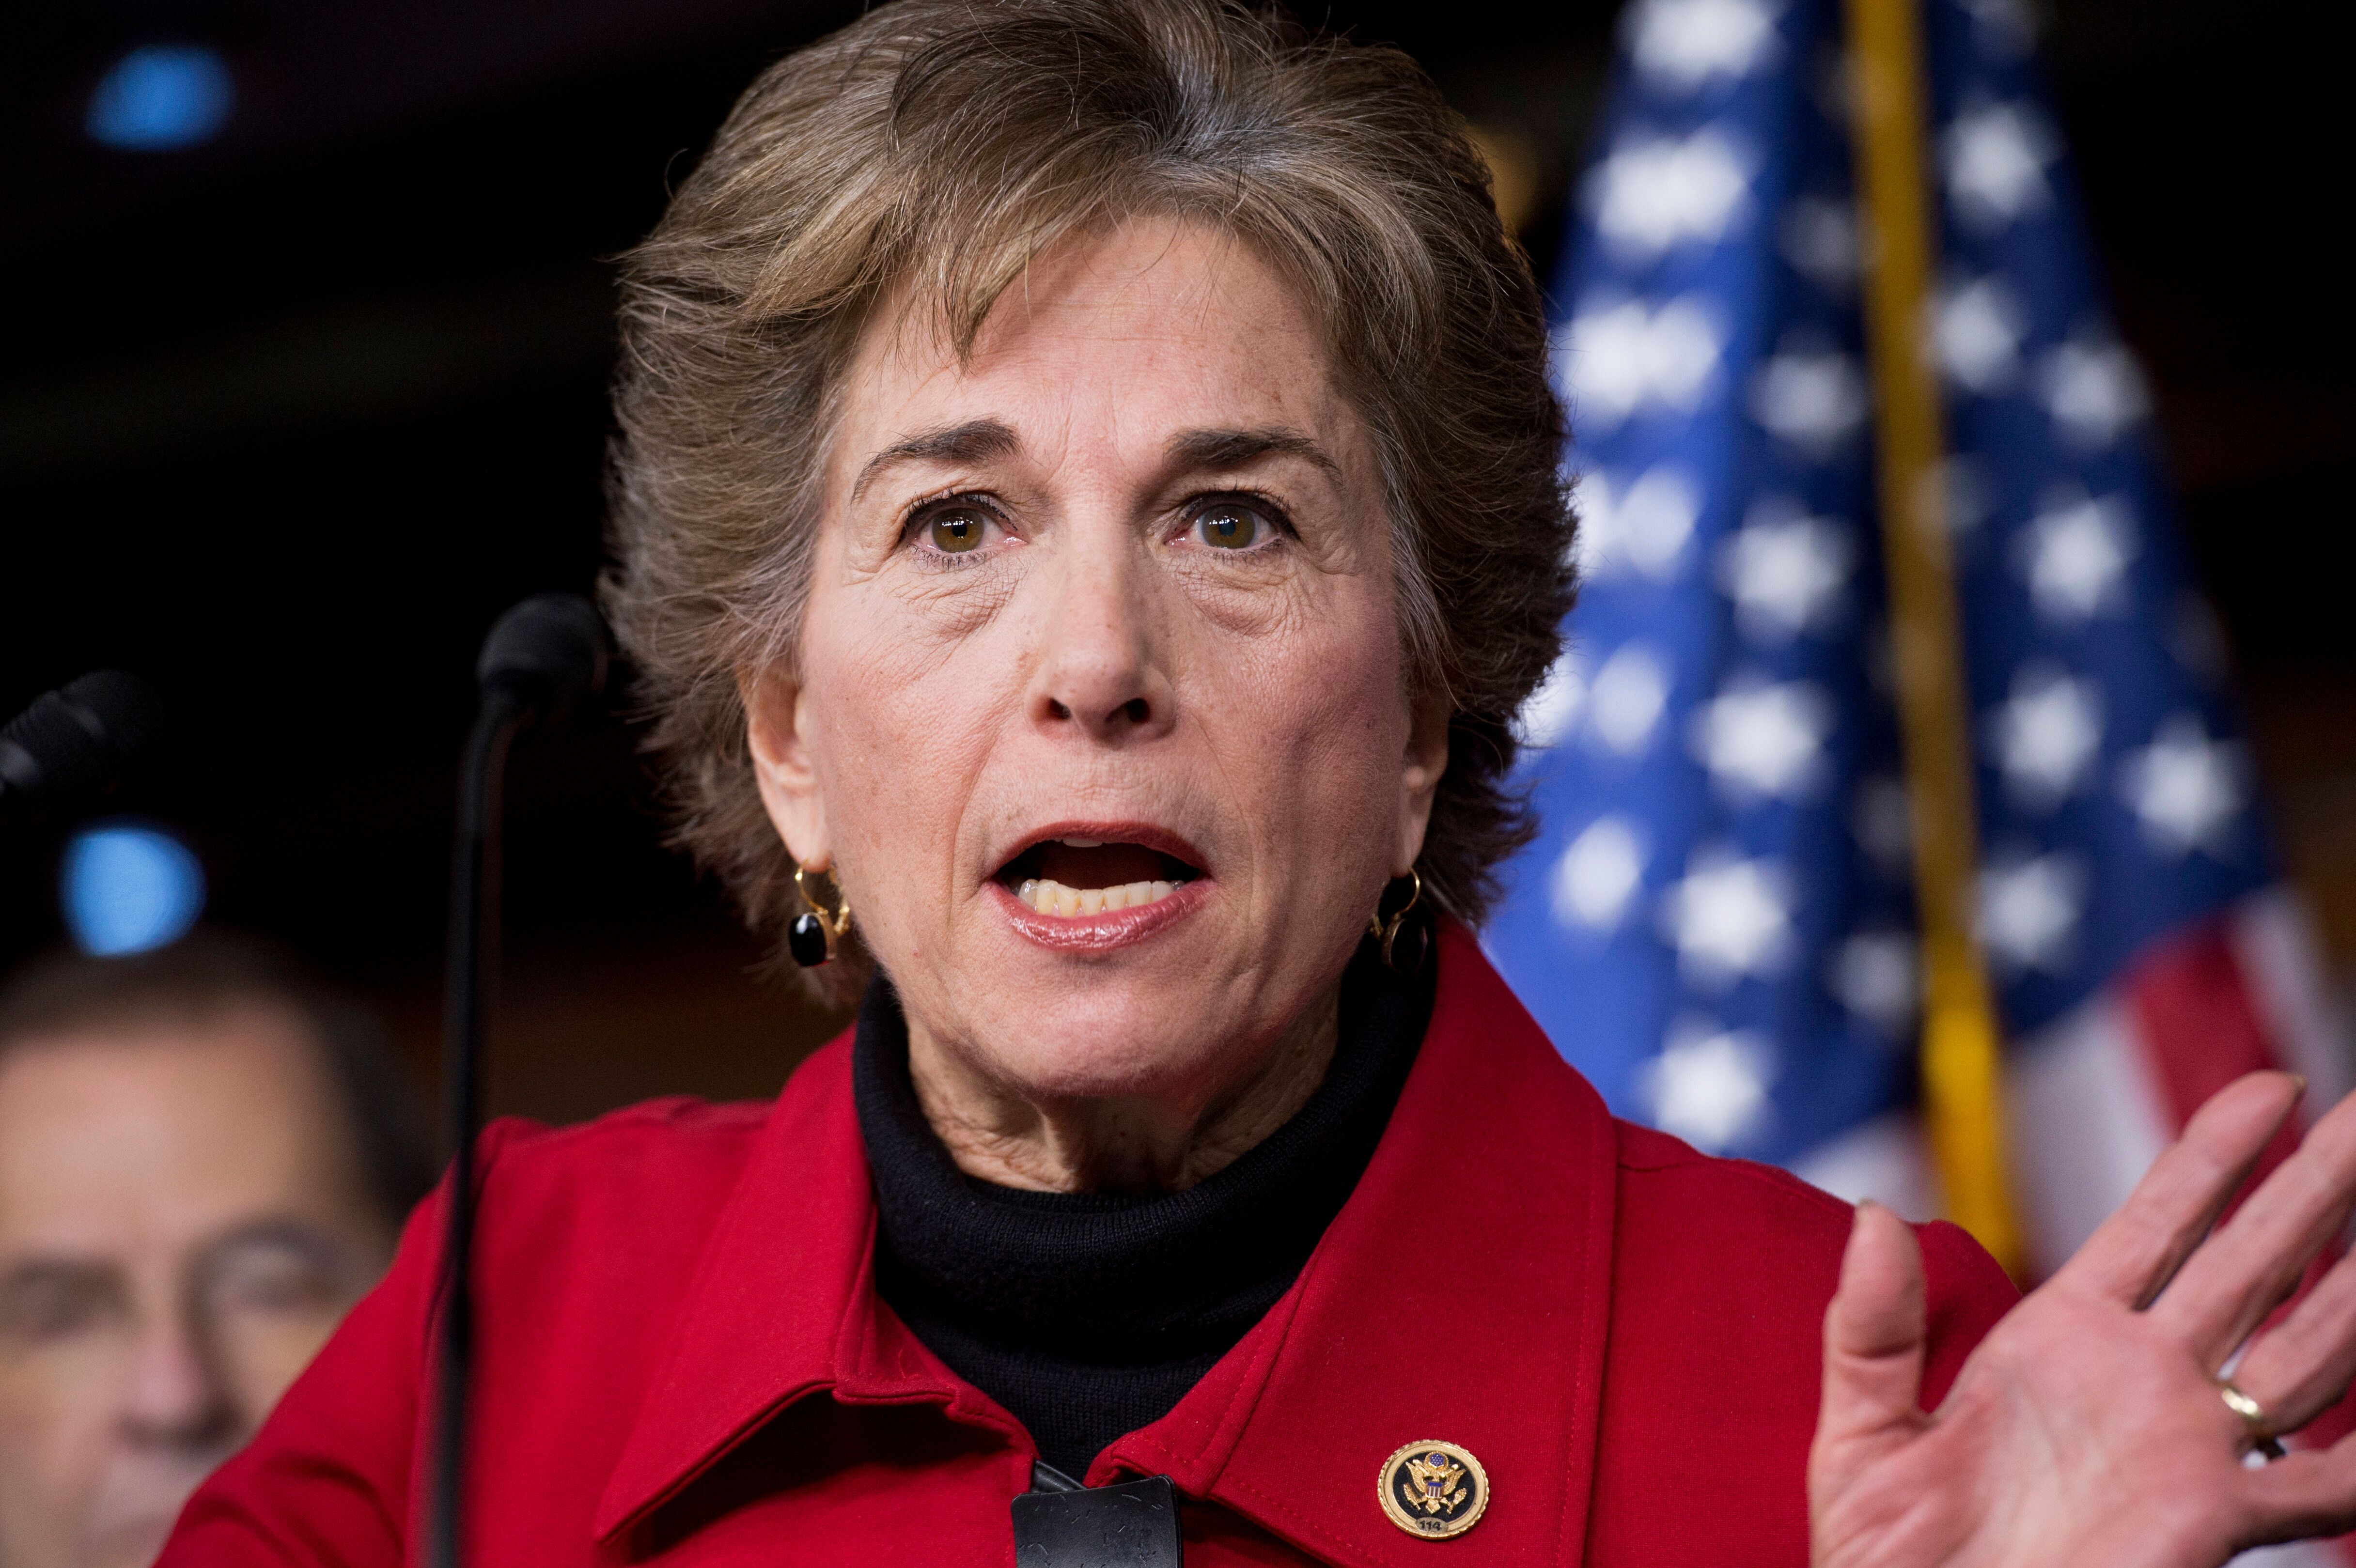 Rep. Jan Schakowsky (D-Ill.) spearheaded a letter calling for President Joe Biden to waive patents preventing developing coun